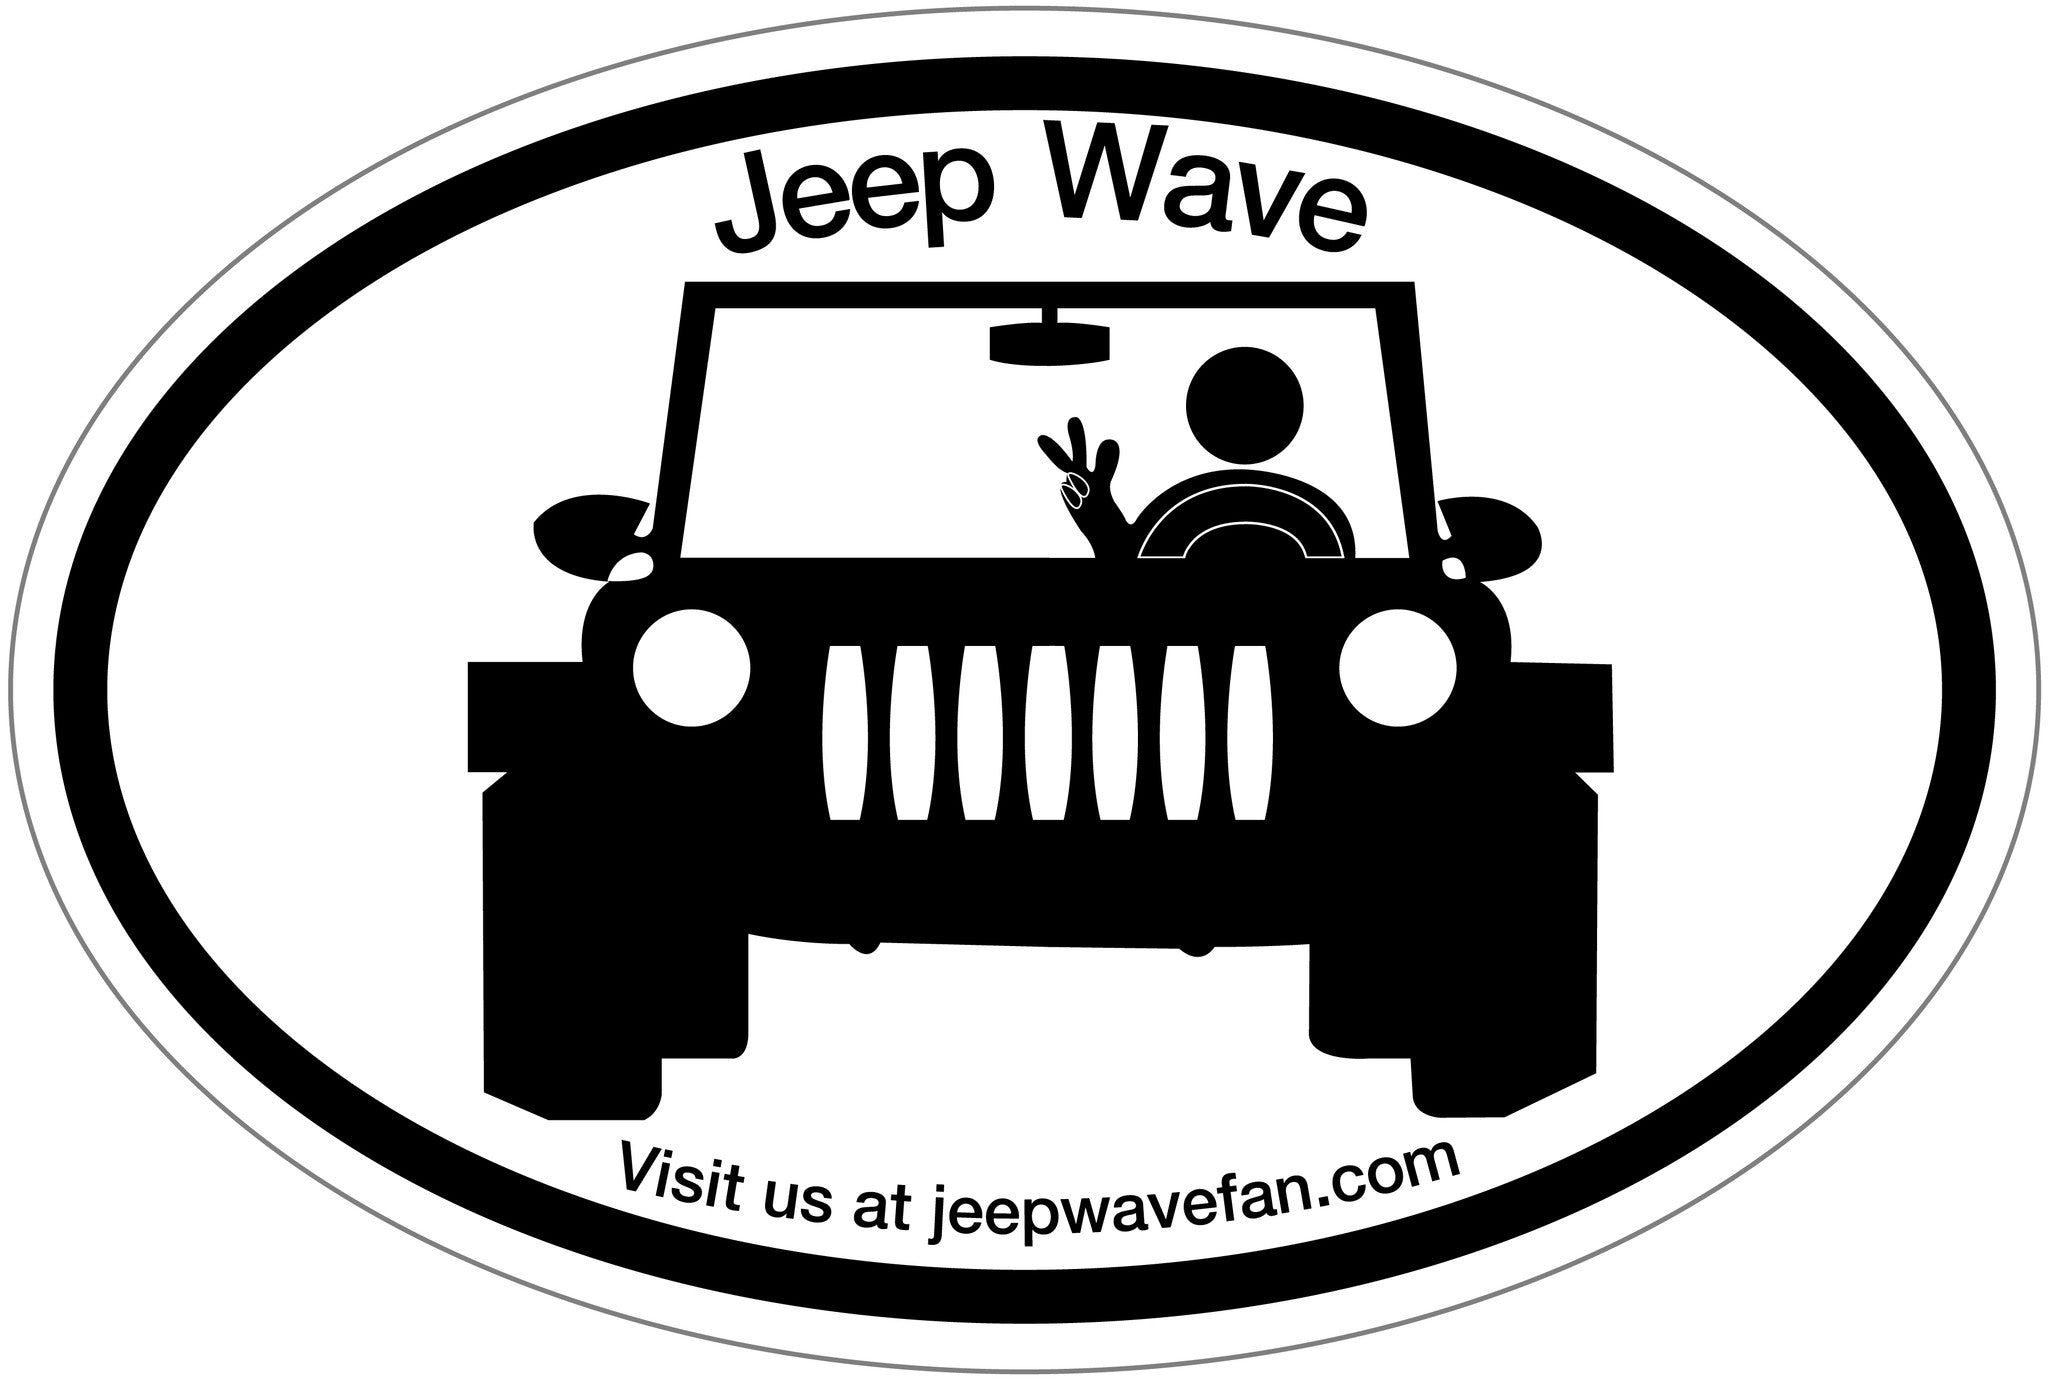 Jeep Wave Fan Bumper Sticker